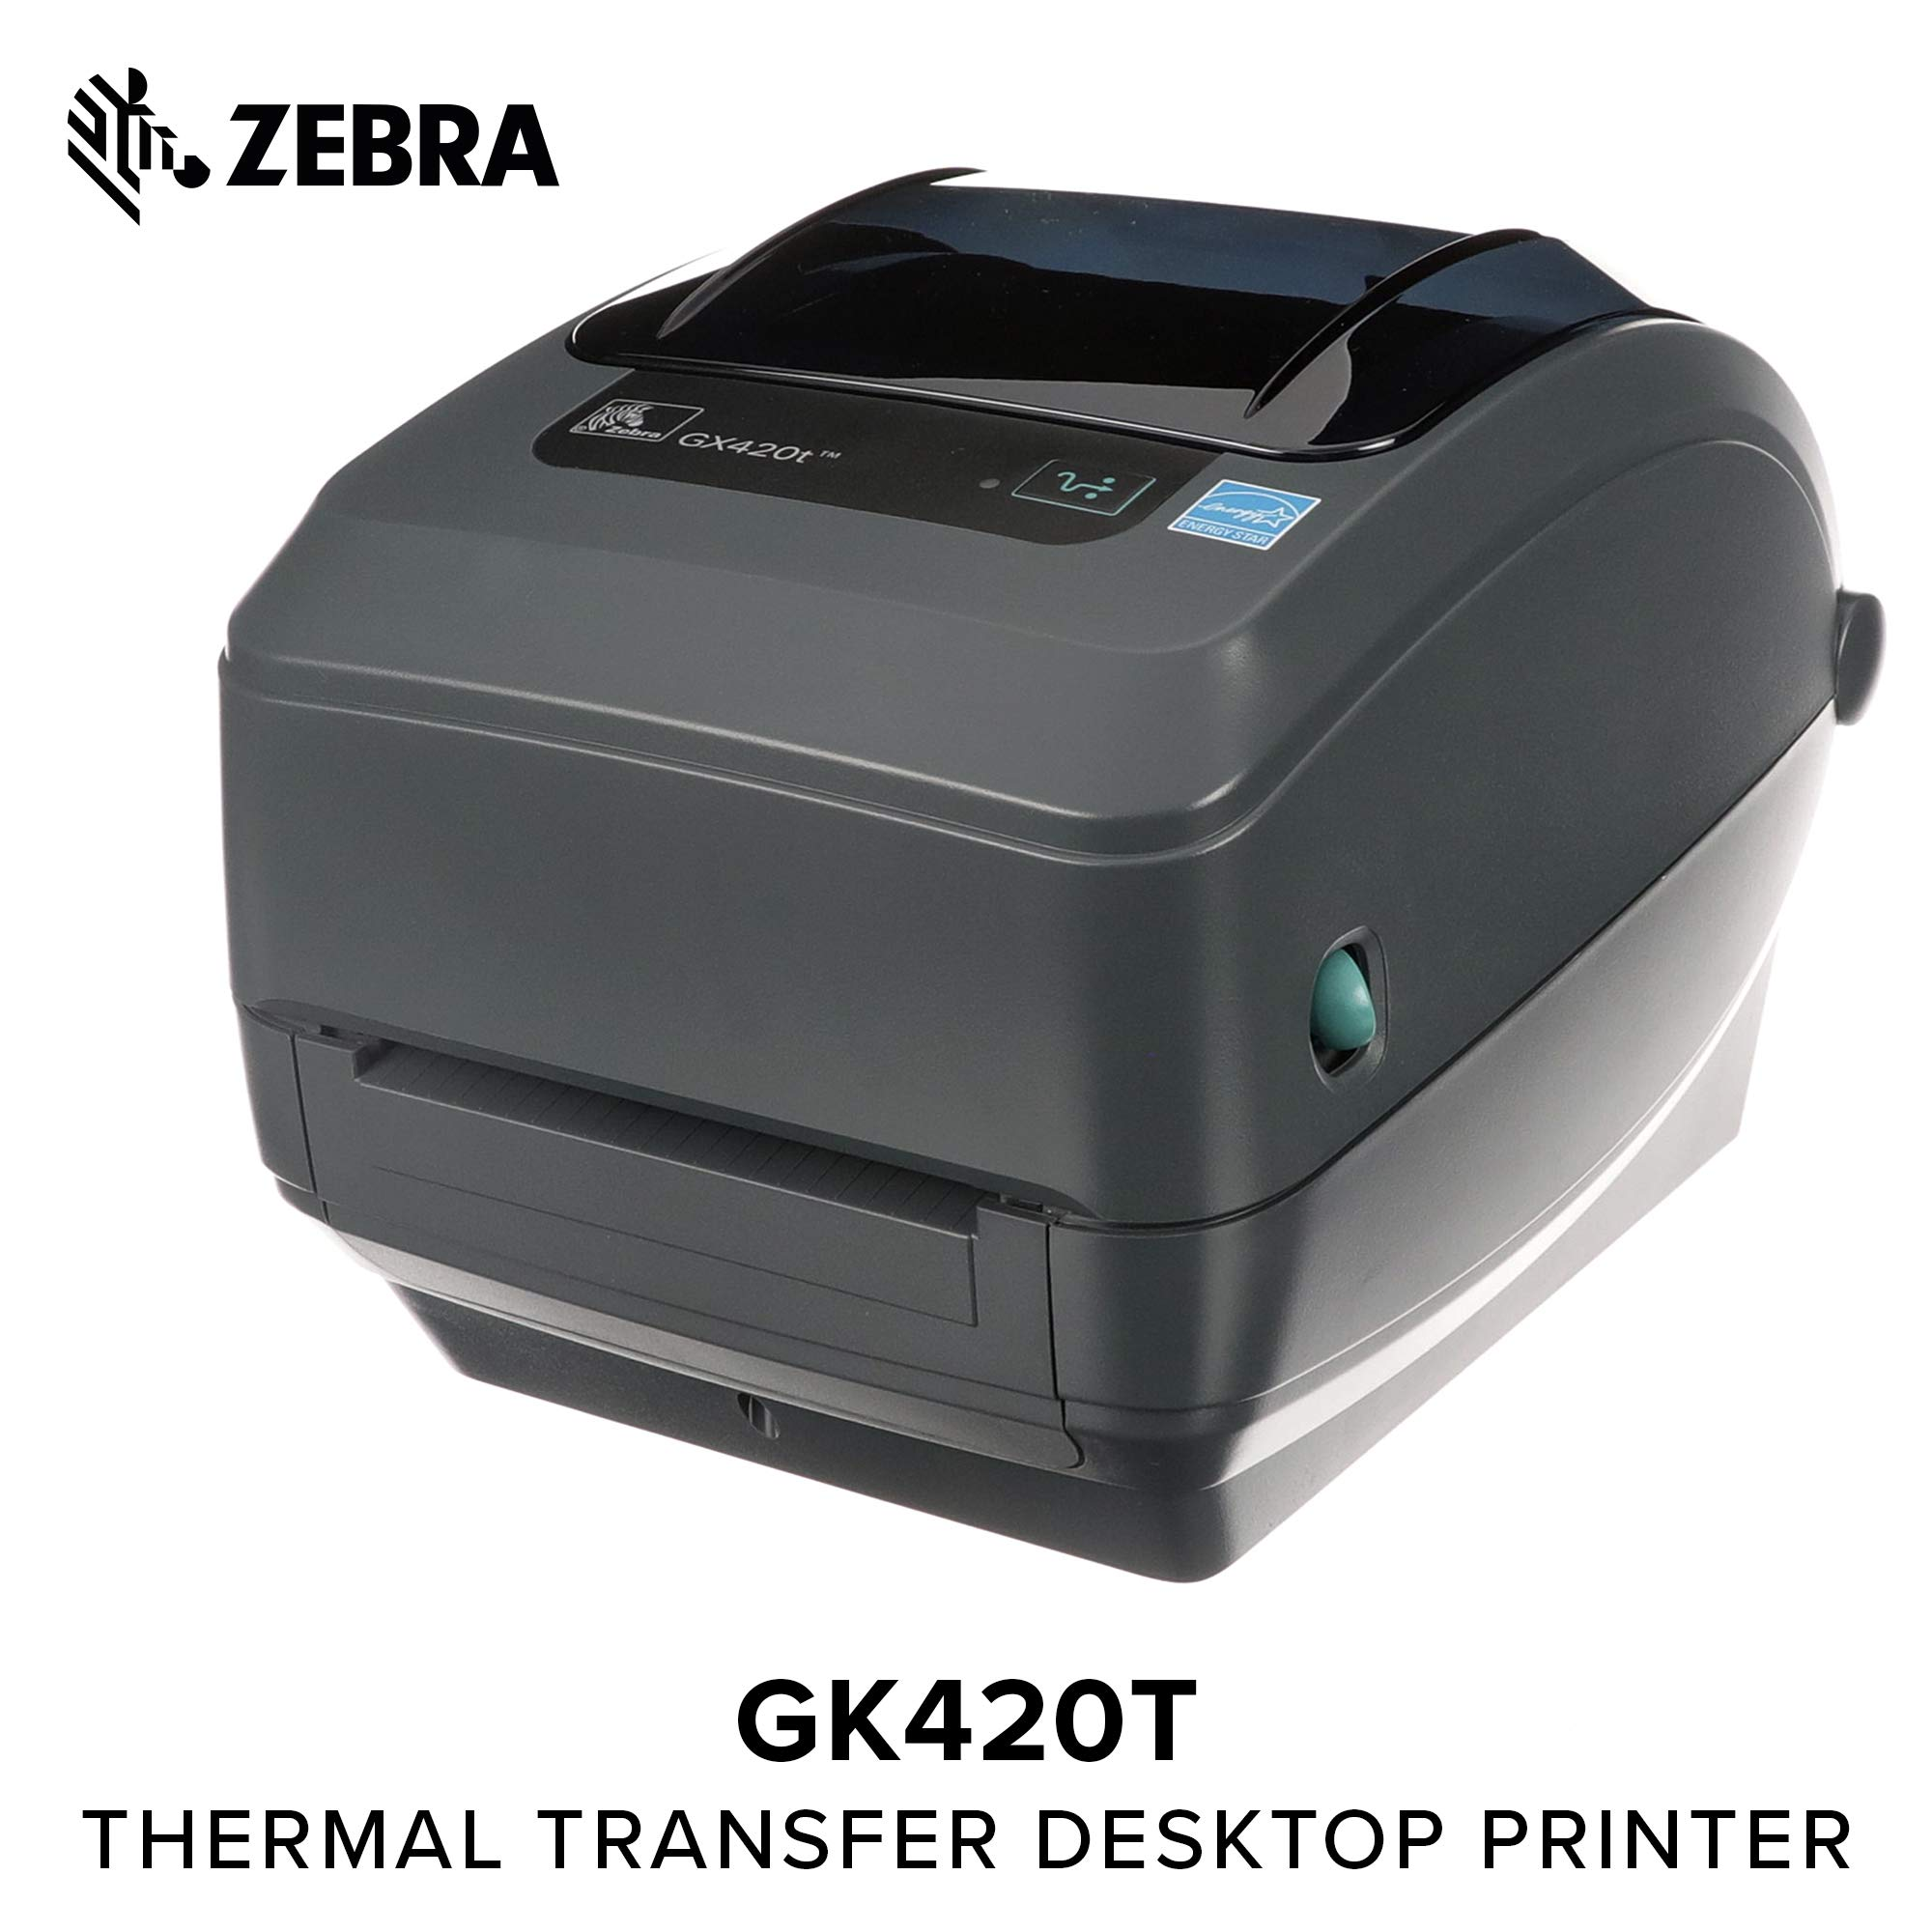 Zebra - GX420t Thermal Transfer Desktop Printer for Labels, Receipts, Barcodes, Tags, and Wrist Bands - Print Width of 4 in - USB, Serial, and Parallel Port Connectivity